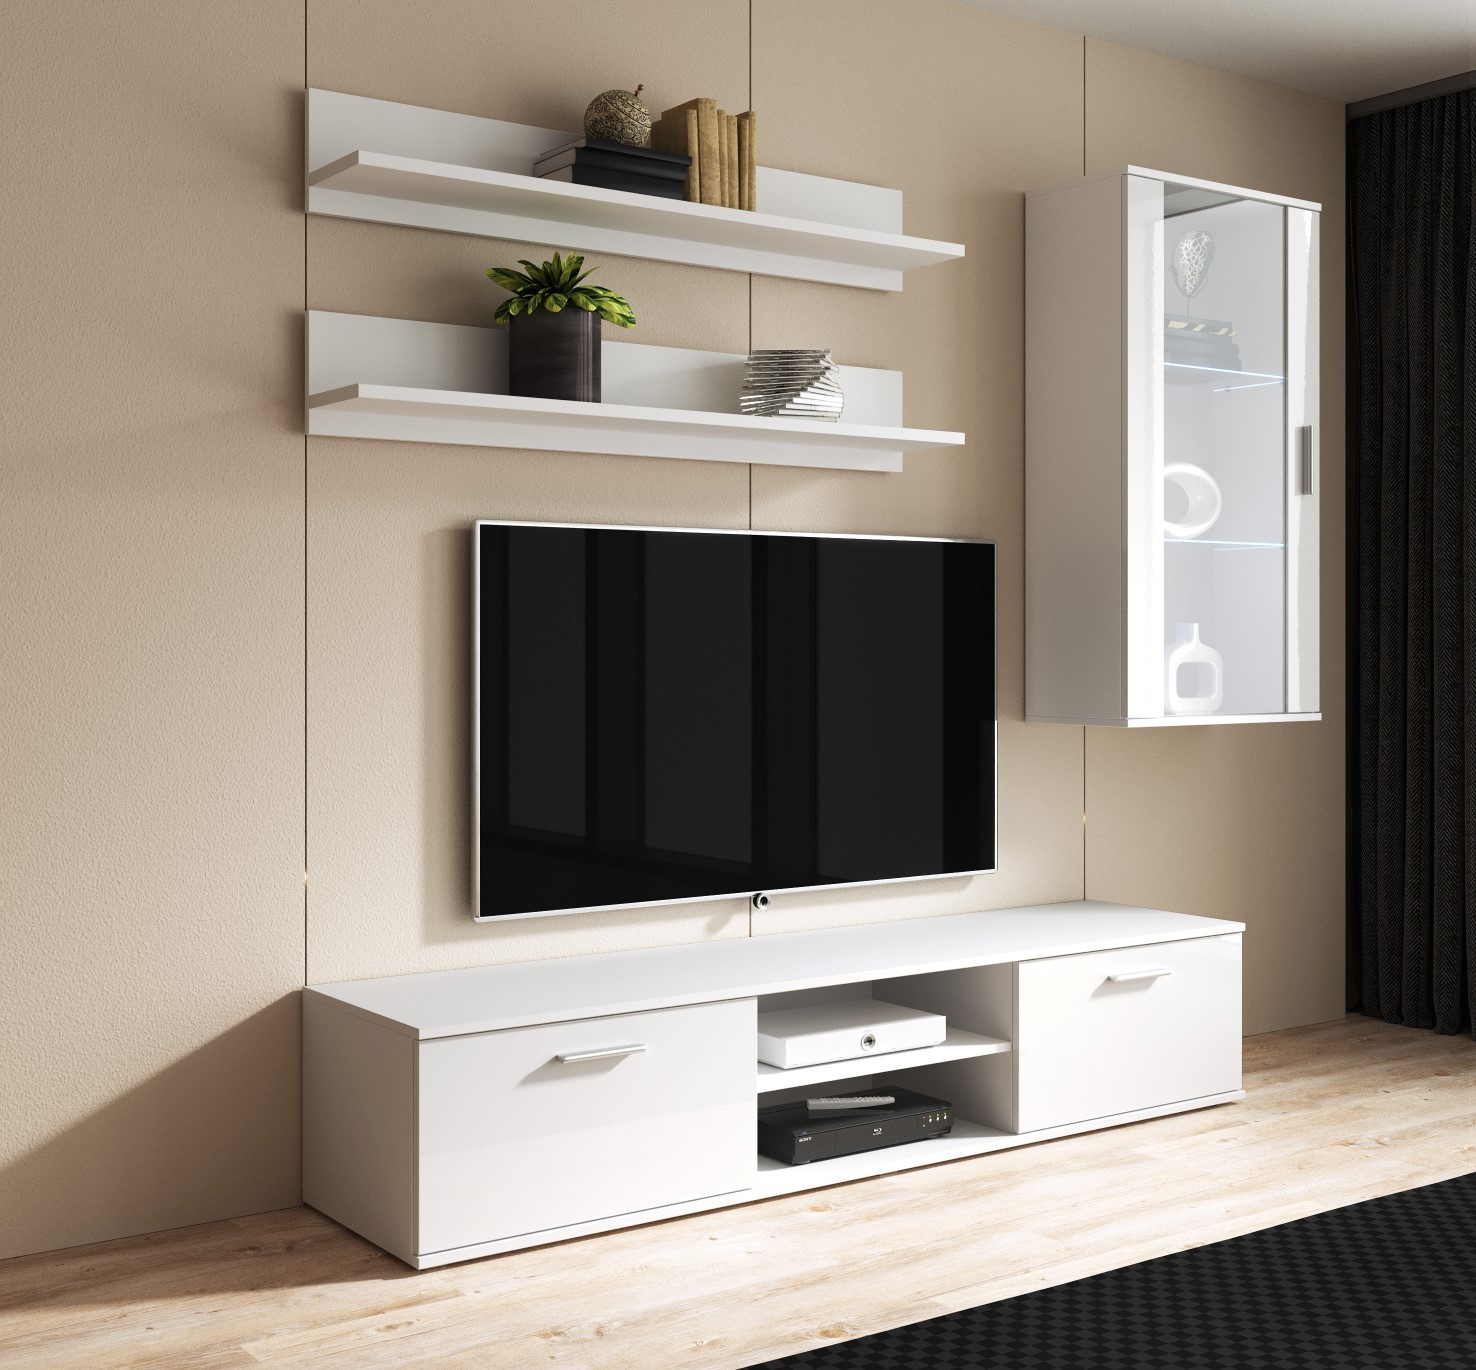 Soho 5 Furniture Set Tv Stand Wall Display Shelf Led White Black Grey Sonoma Ebay